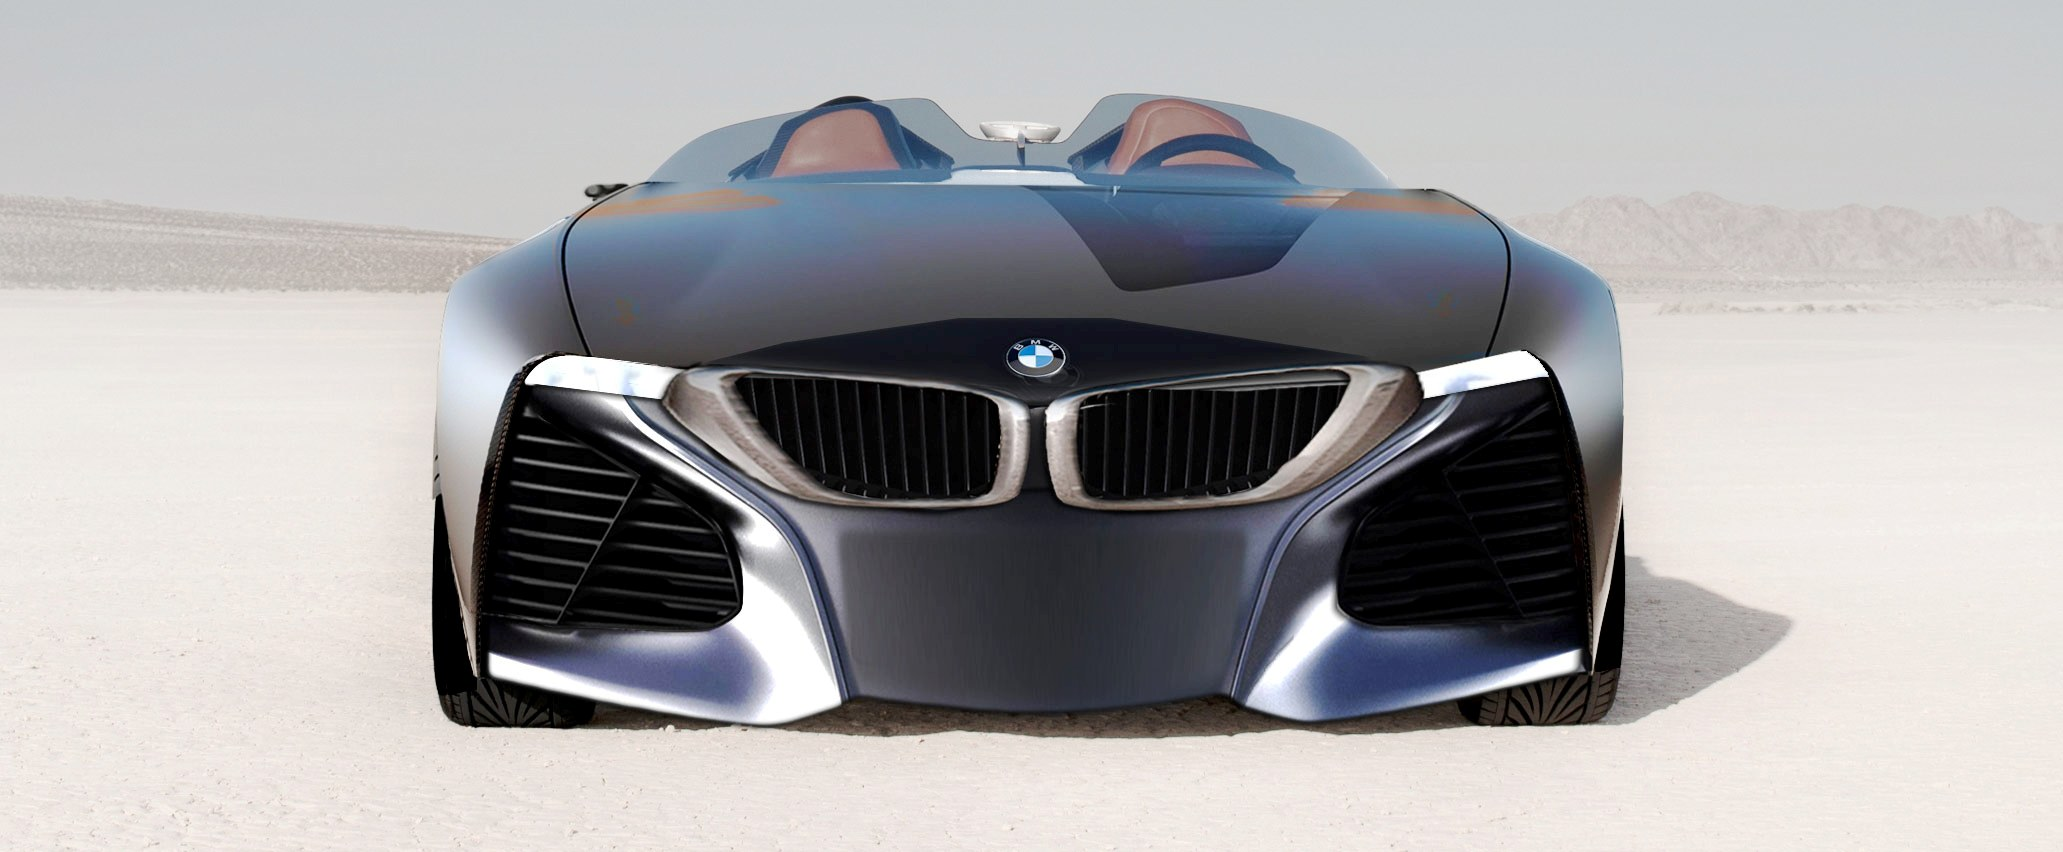 2016 Bmw Z4 Rendering Vision Car Revs Daily Future